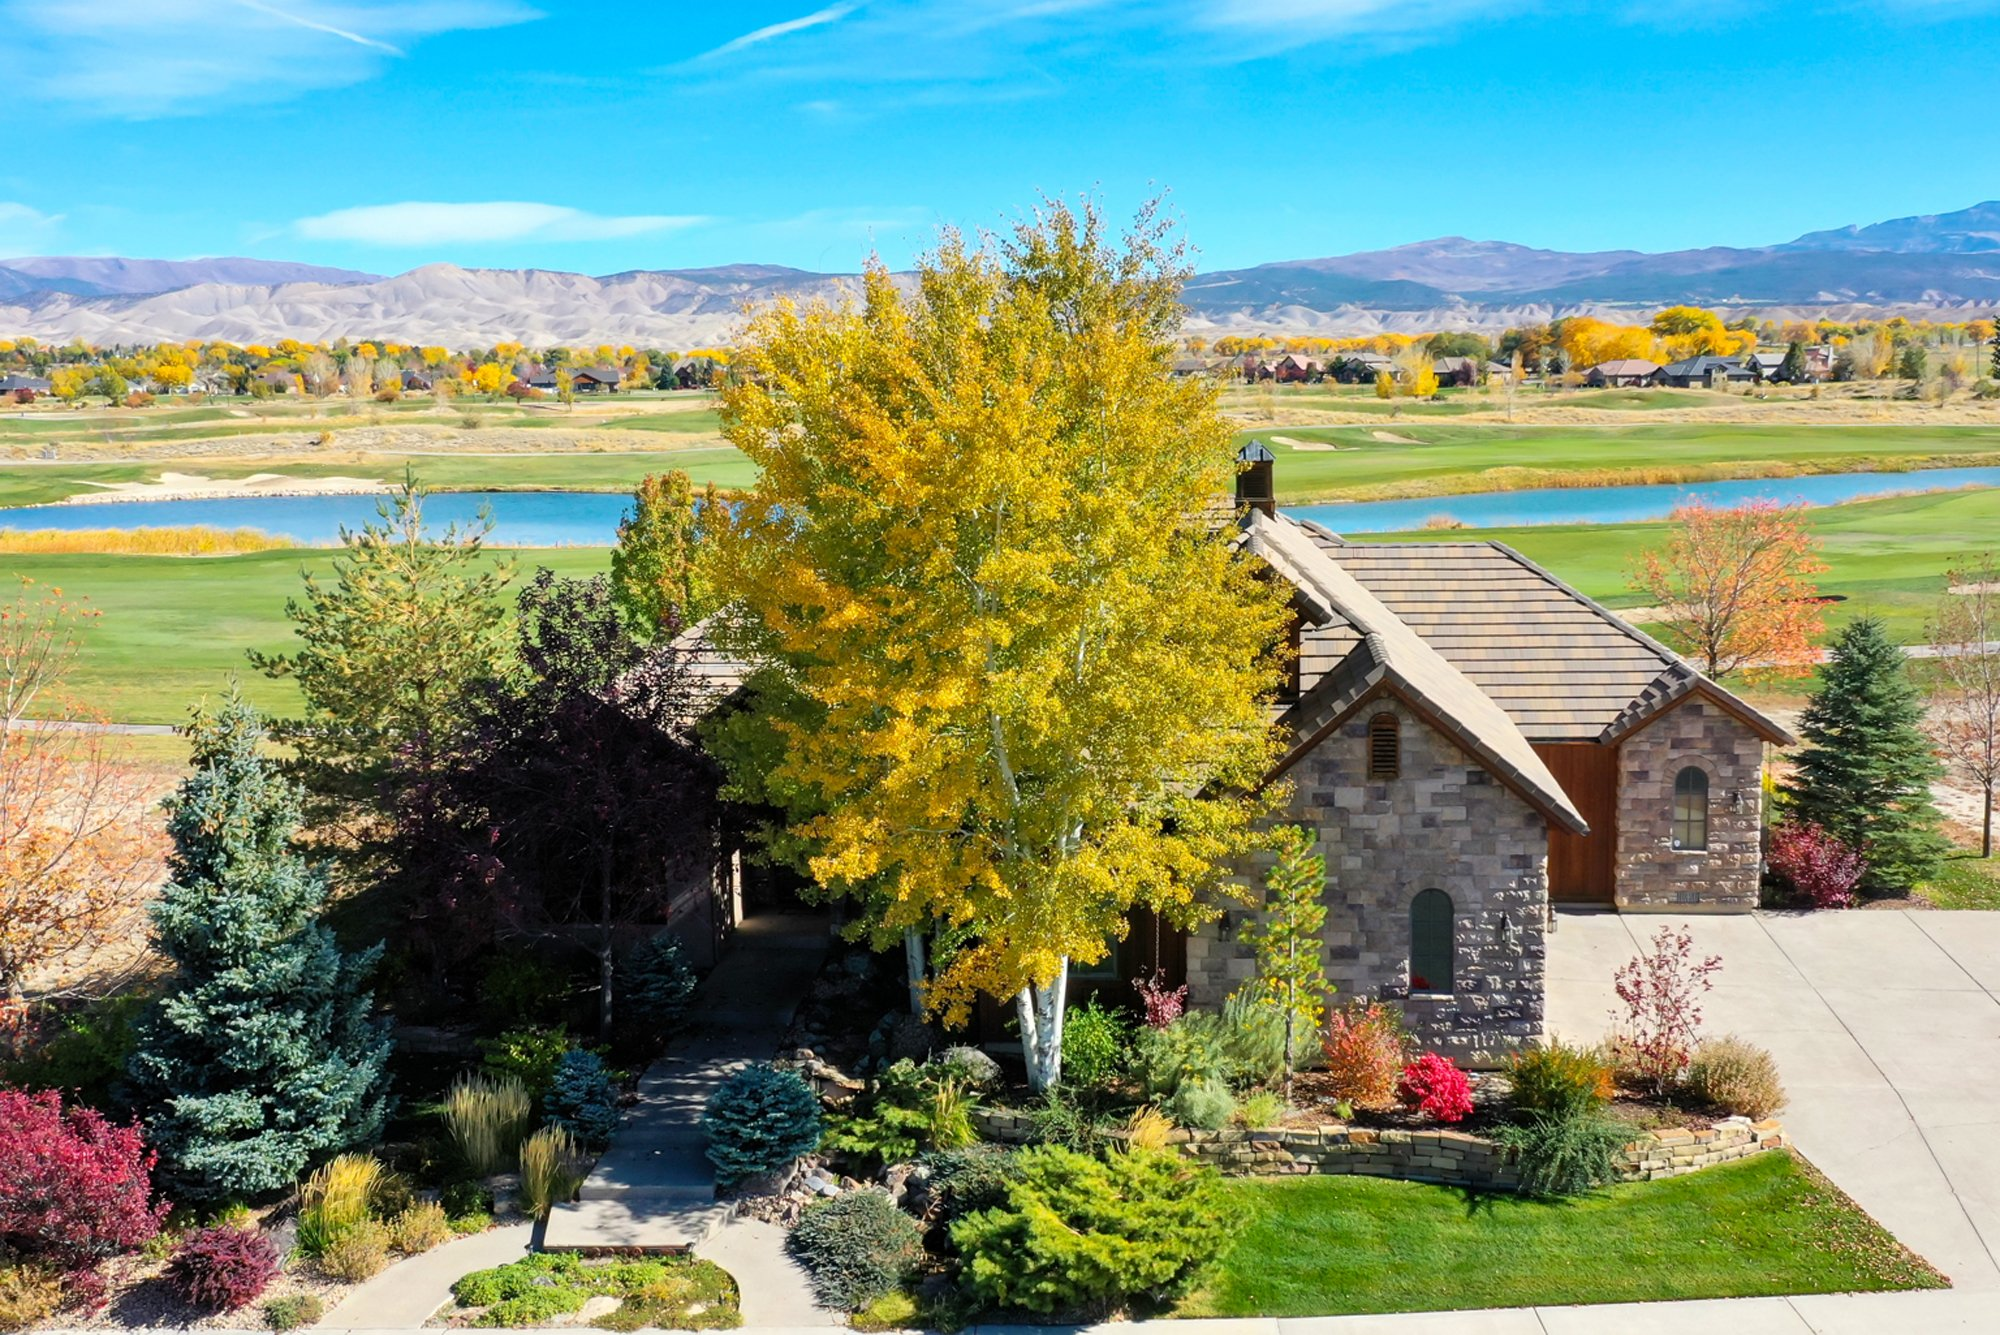 Bridges Golf Property with Fairway and Pond Views - 2839 Sleeping Bear Rd Montrose, CO 81401 - Atha Team Luxury Real Estate